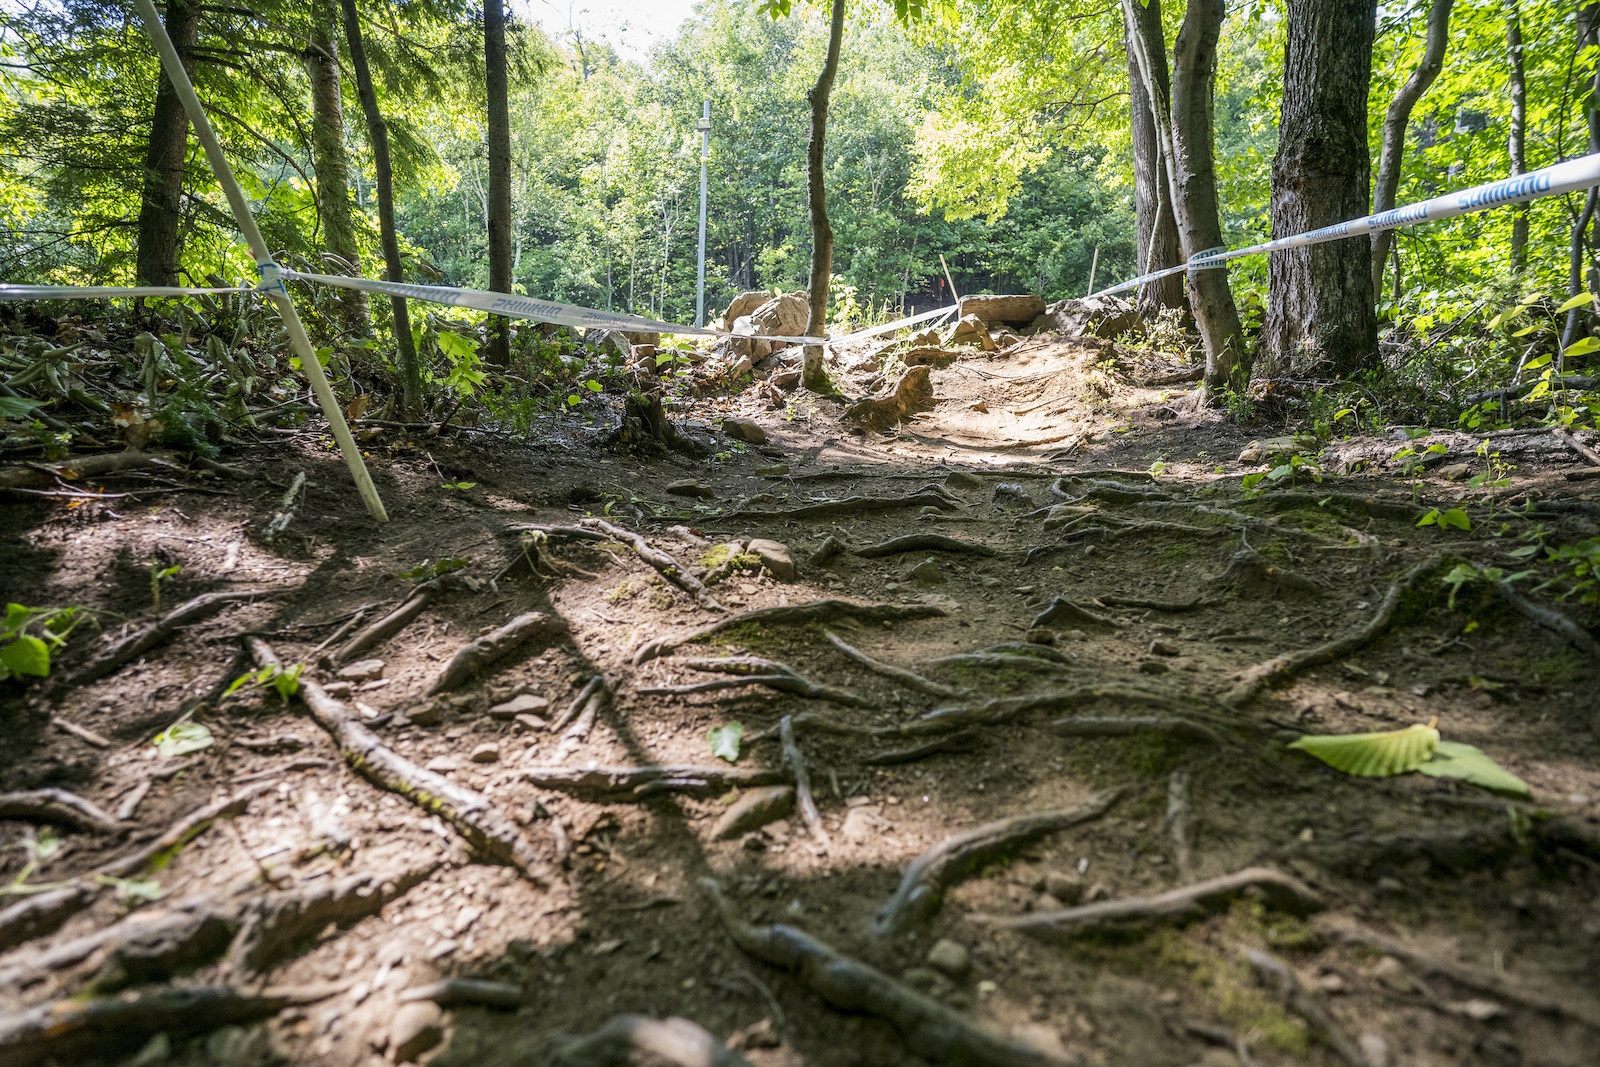 Beds of roots. All the chatter one needs to justify a full suspension bike on this course.